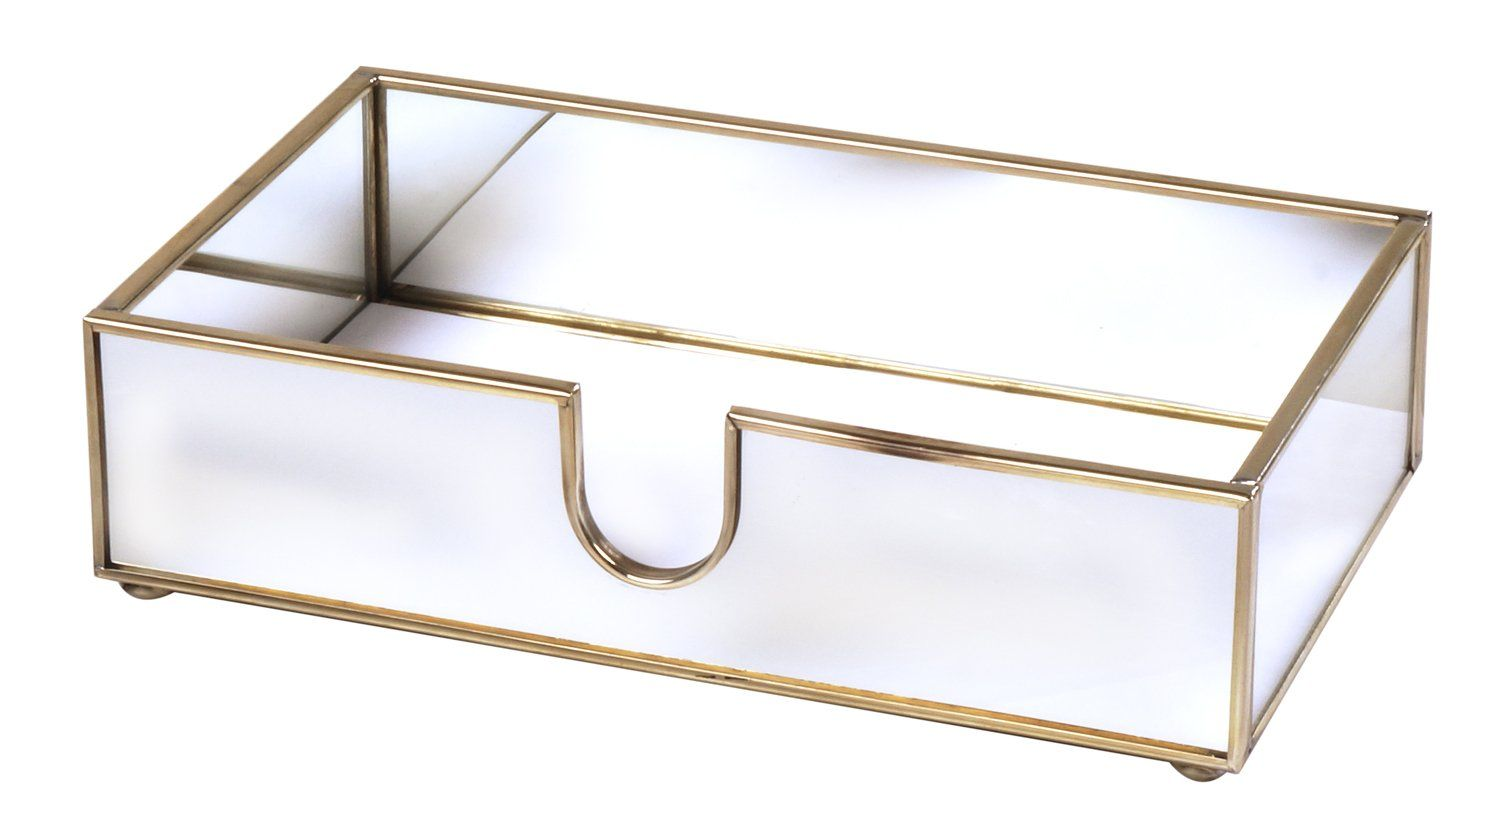 Amazon Com Hand Towel Holder Mirrored For Paper Guest Towels Or Linen Guest Towel Tray Holder Hand Towel Holder Paper Guest Towels Guest Towel Storage